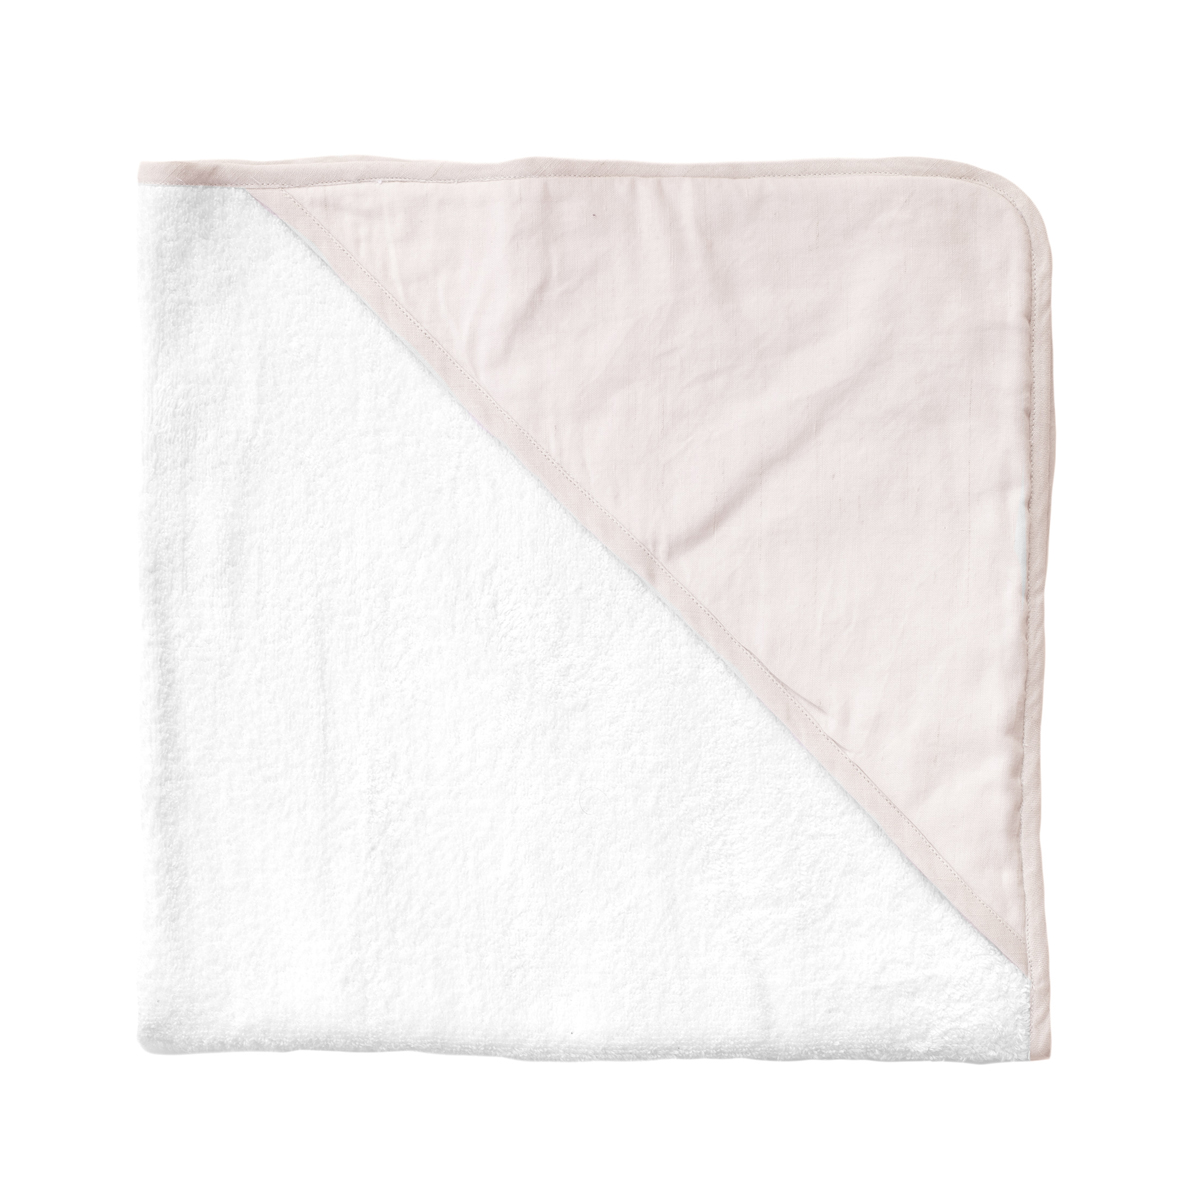 Louelle Hooded Towel in Blossom Pink